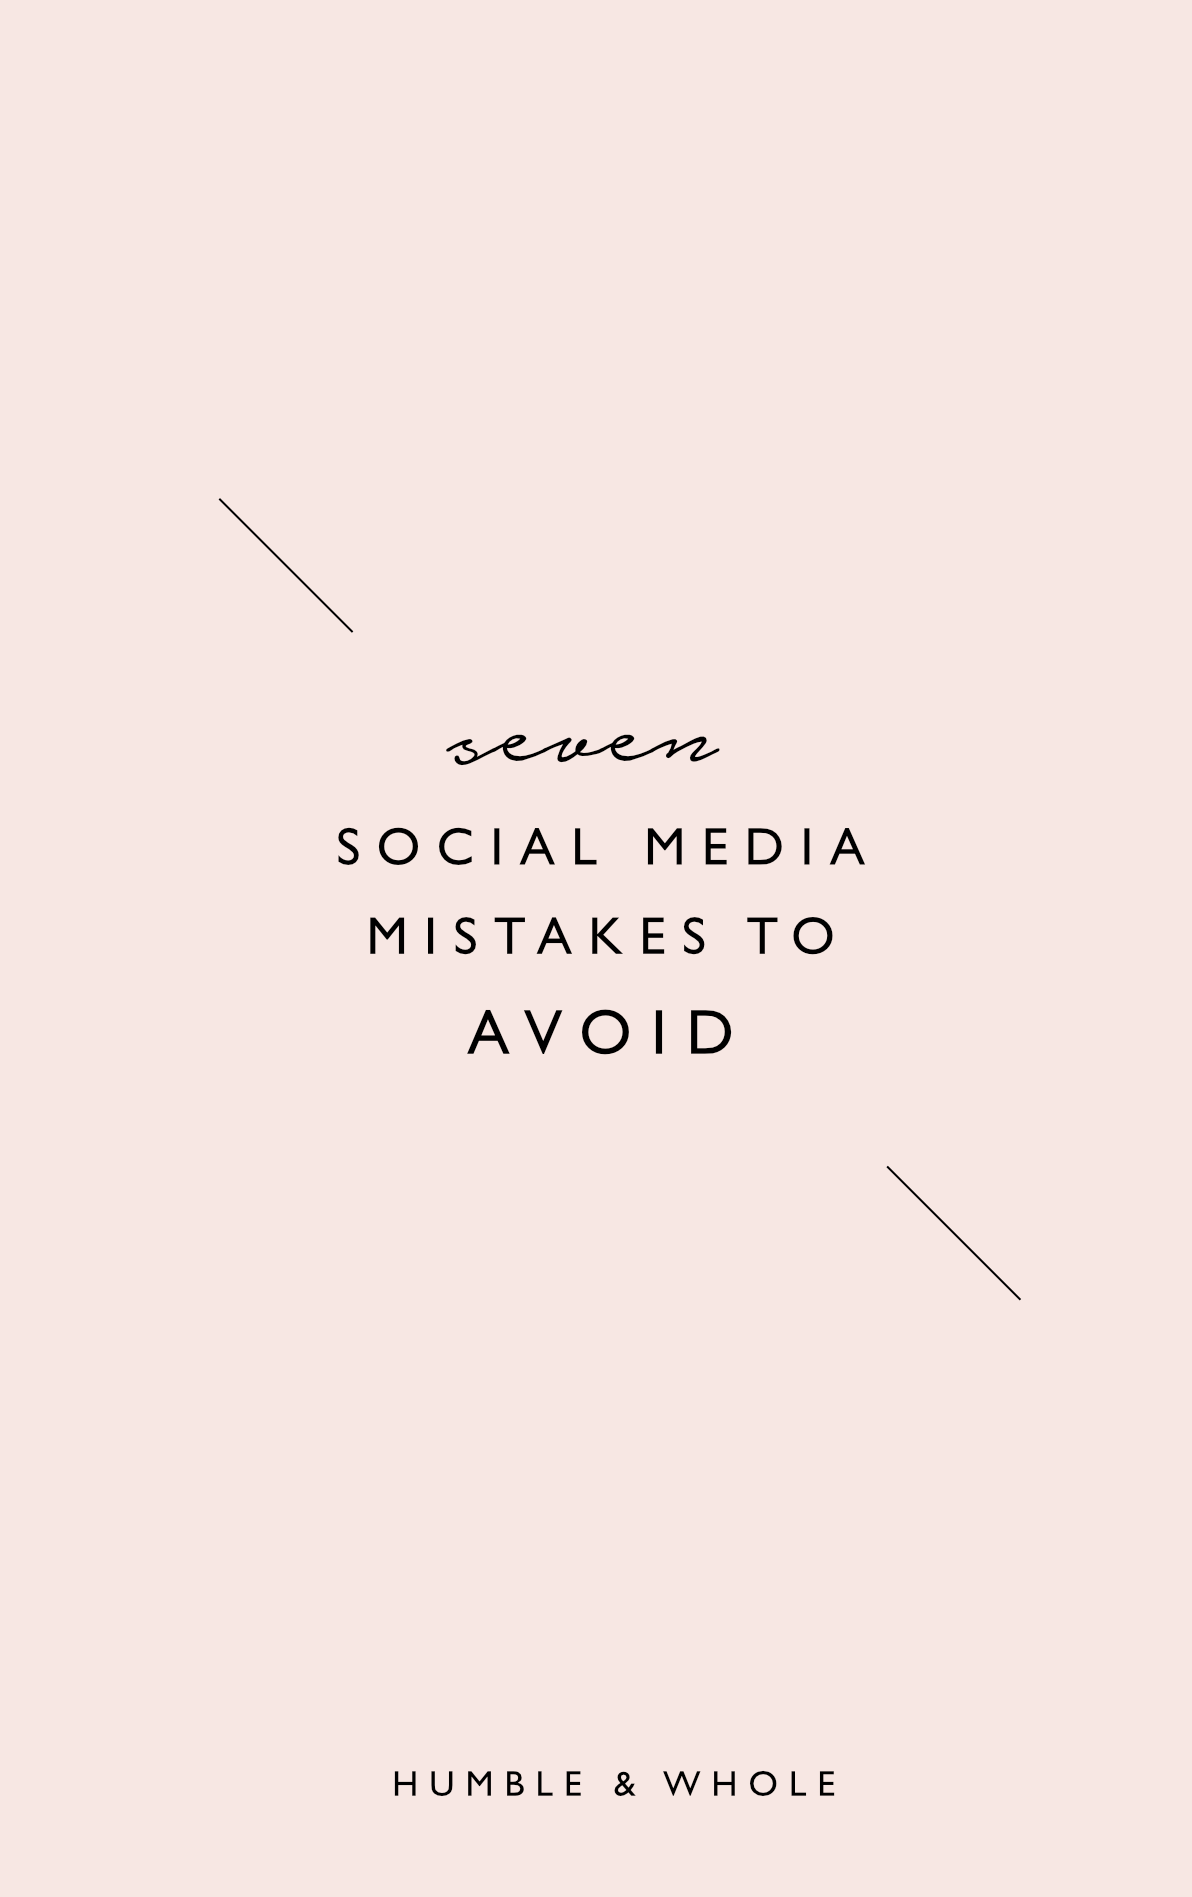 If you're a blogger or business owner, you understand the importance of building a presence on social media. There are definitely some practices that could thwart your efforts to grow your following and get the most out of your social media. Click through to check out seven social media mistakes you should avoid making.